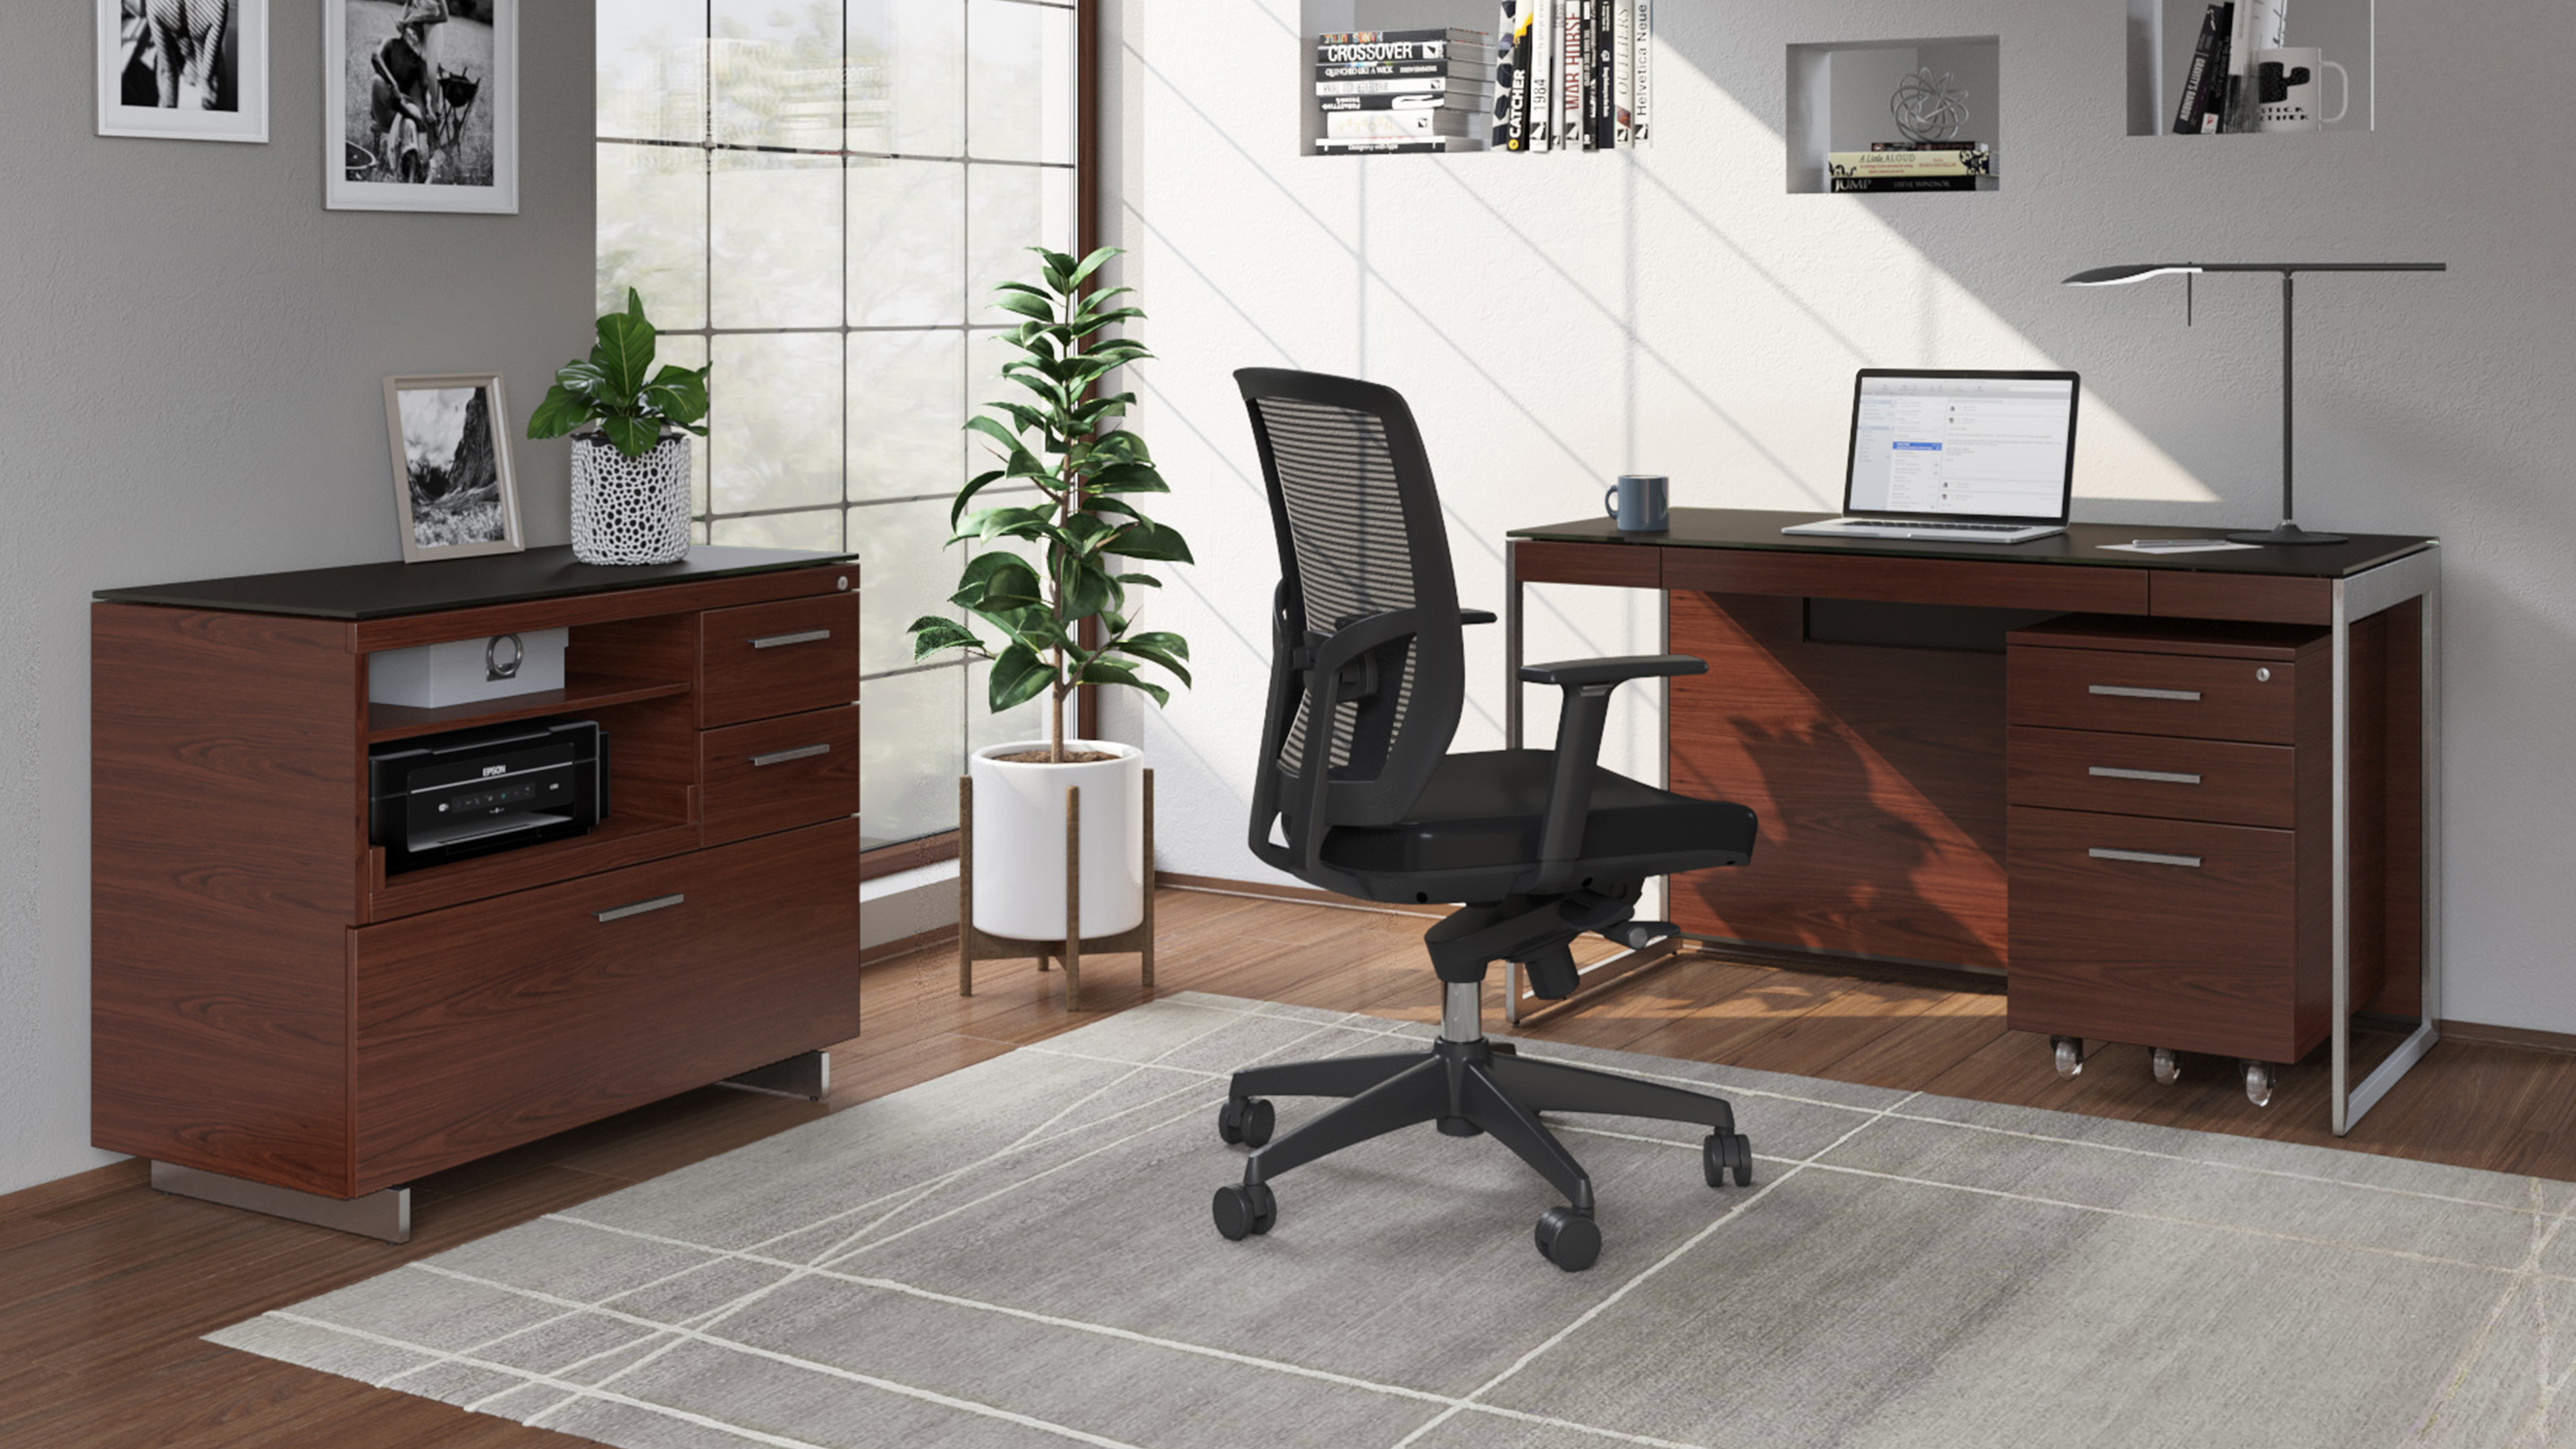 Sequel 6103 small home office desk, shown with complementary file and storage cabinets from the Sequel office collection by BDI furniture.